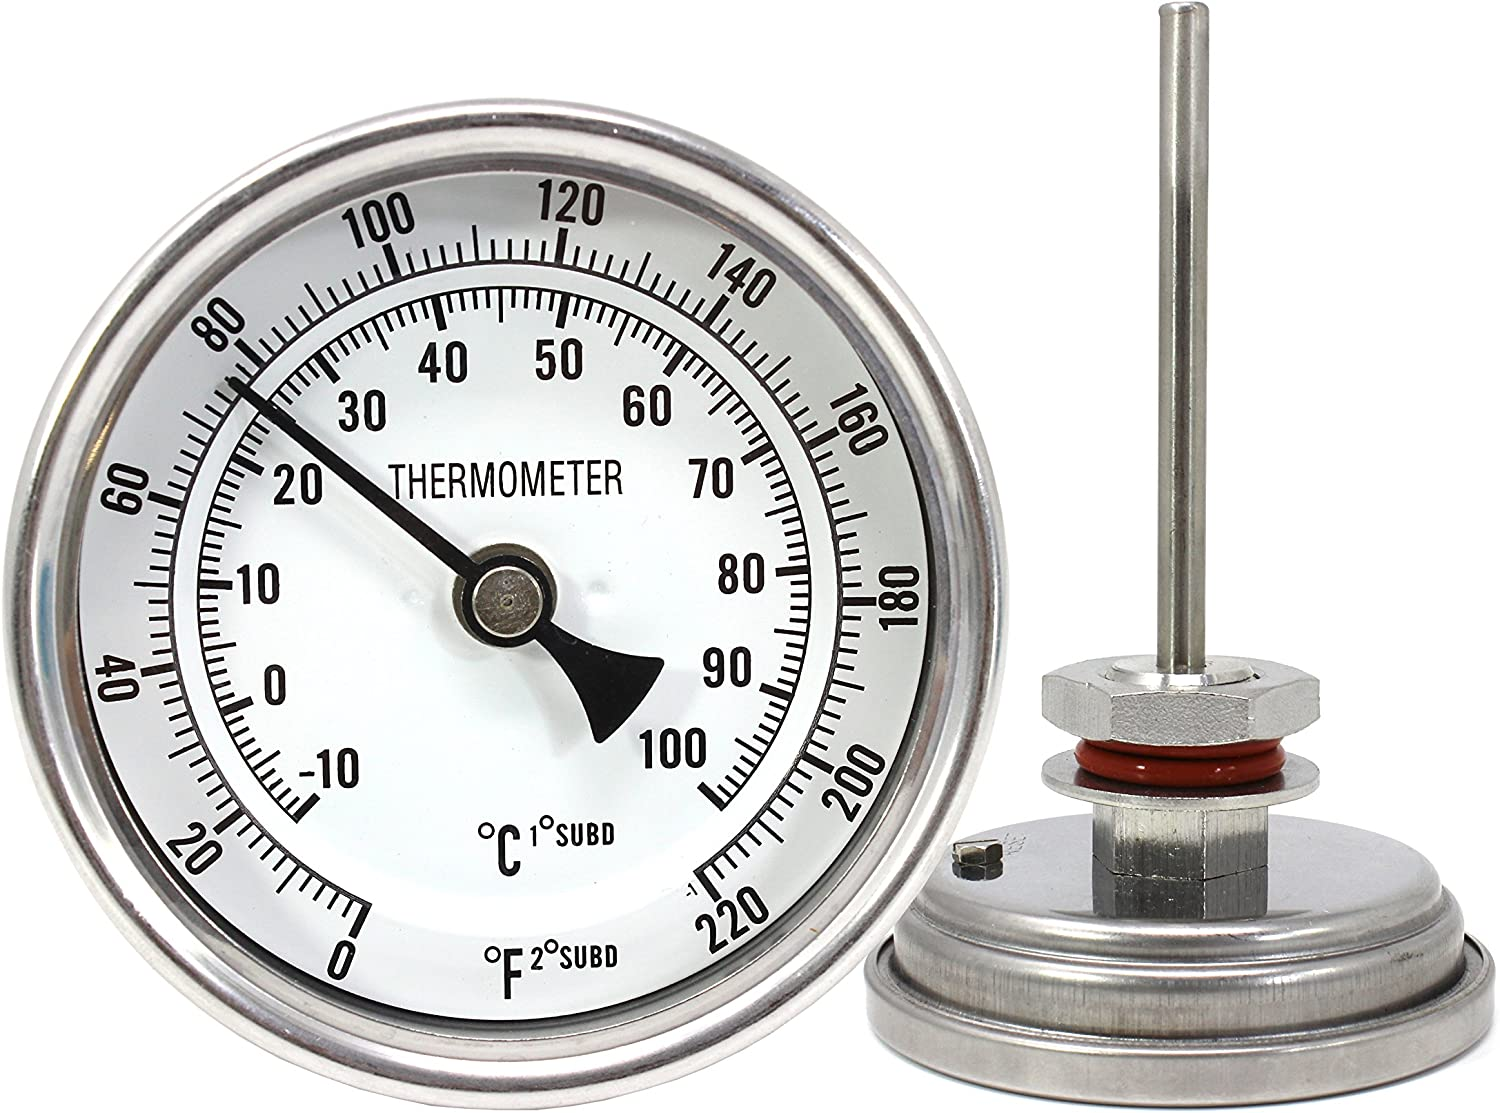 "CONCORD 3"" Stainless Steel Thermometer with Mounting Assembly. Great for Home Brewing"